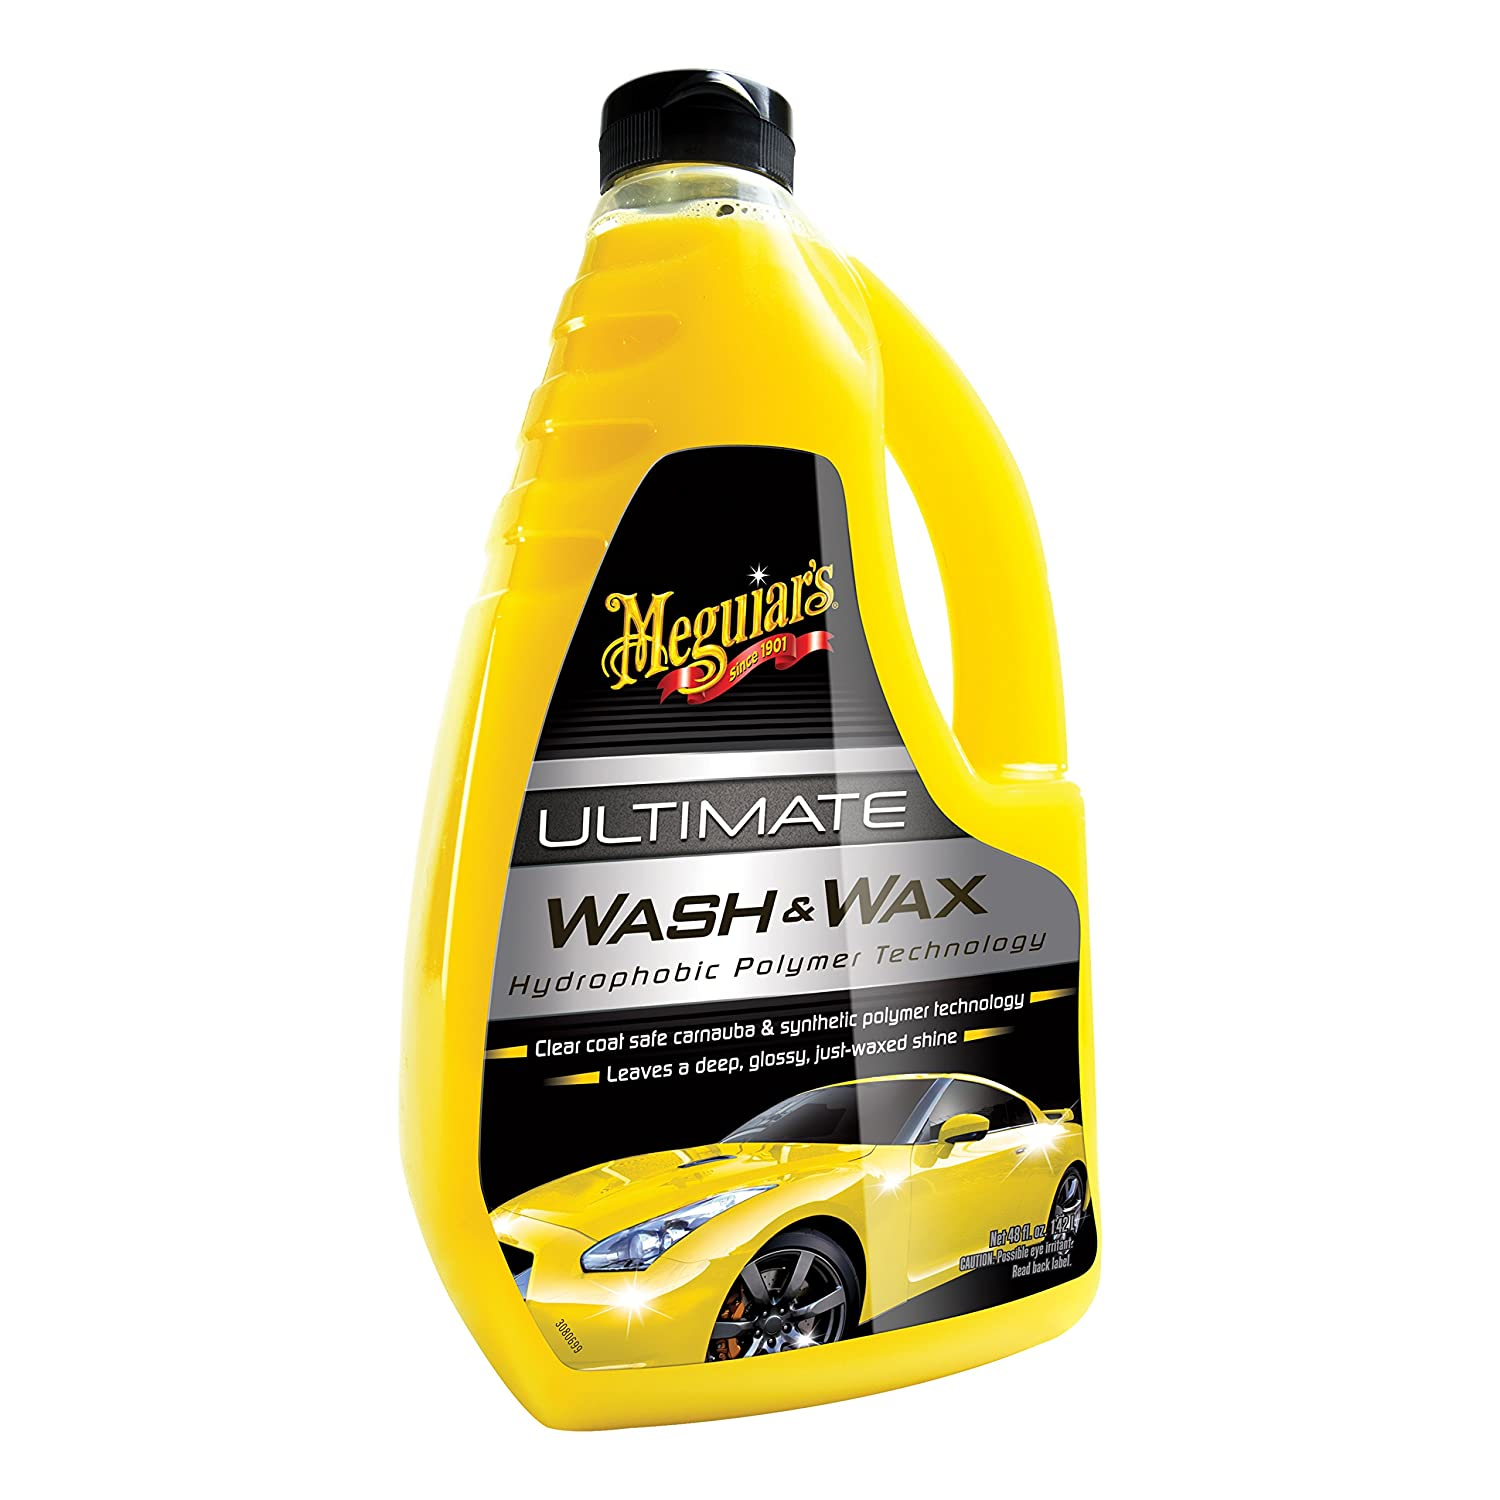 Meguiar's Ultimate Wash & Wax – Car Washing Made Easy – Clean and Shine in One Step – G17748, 48 oz